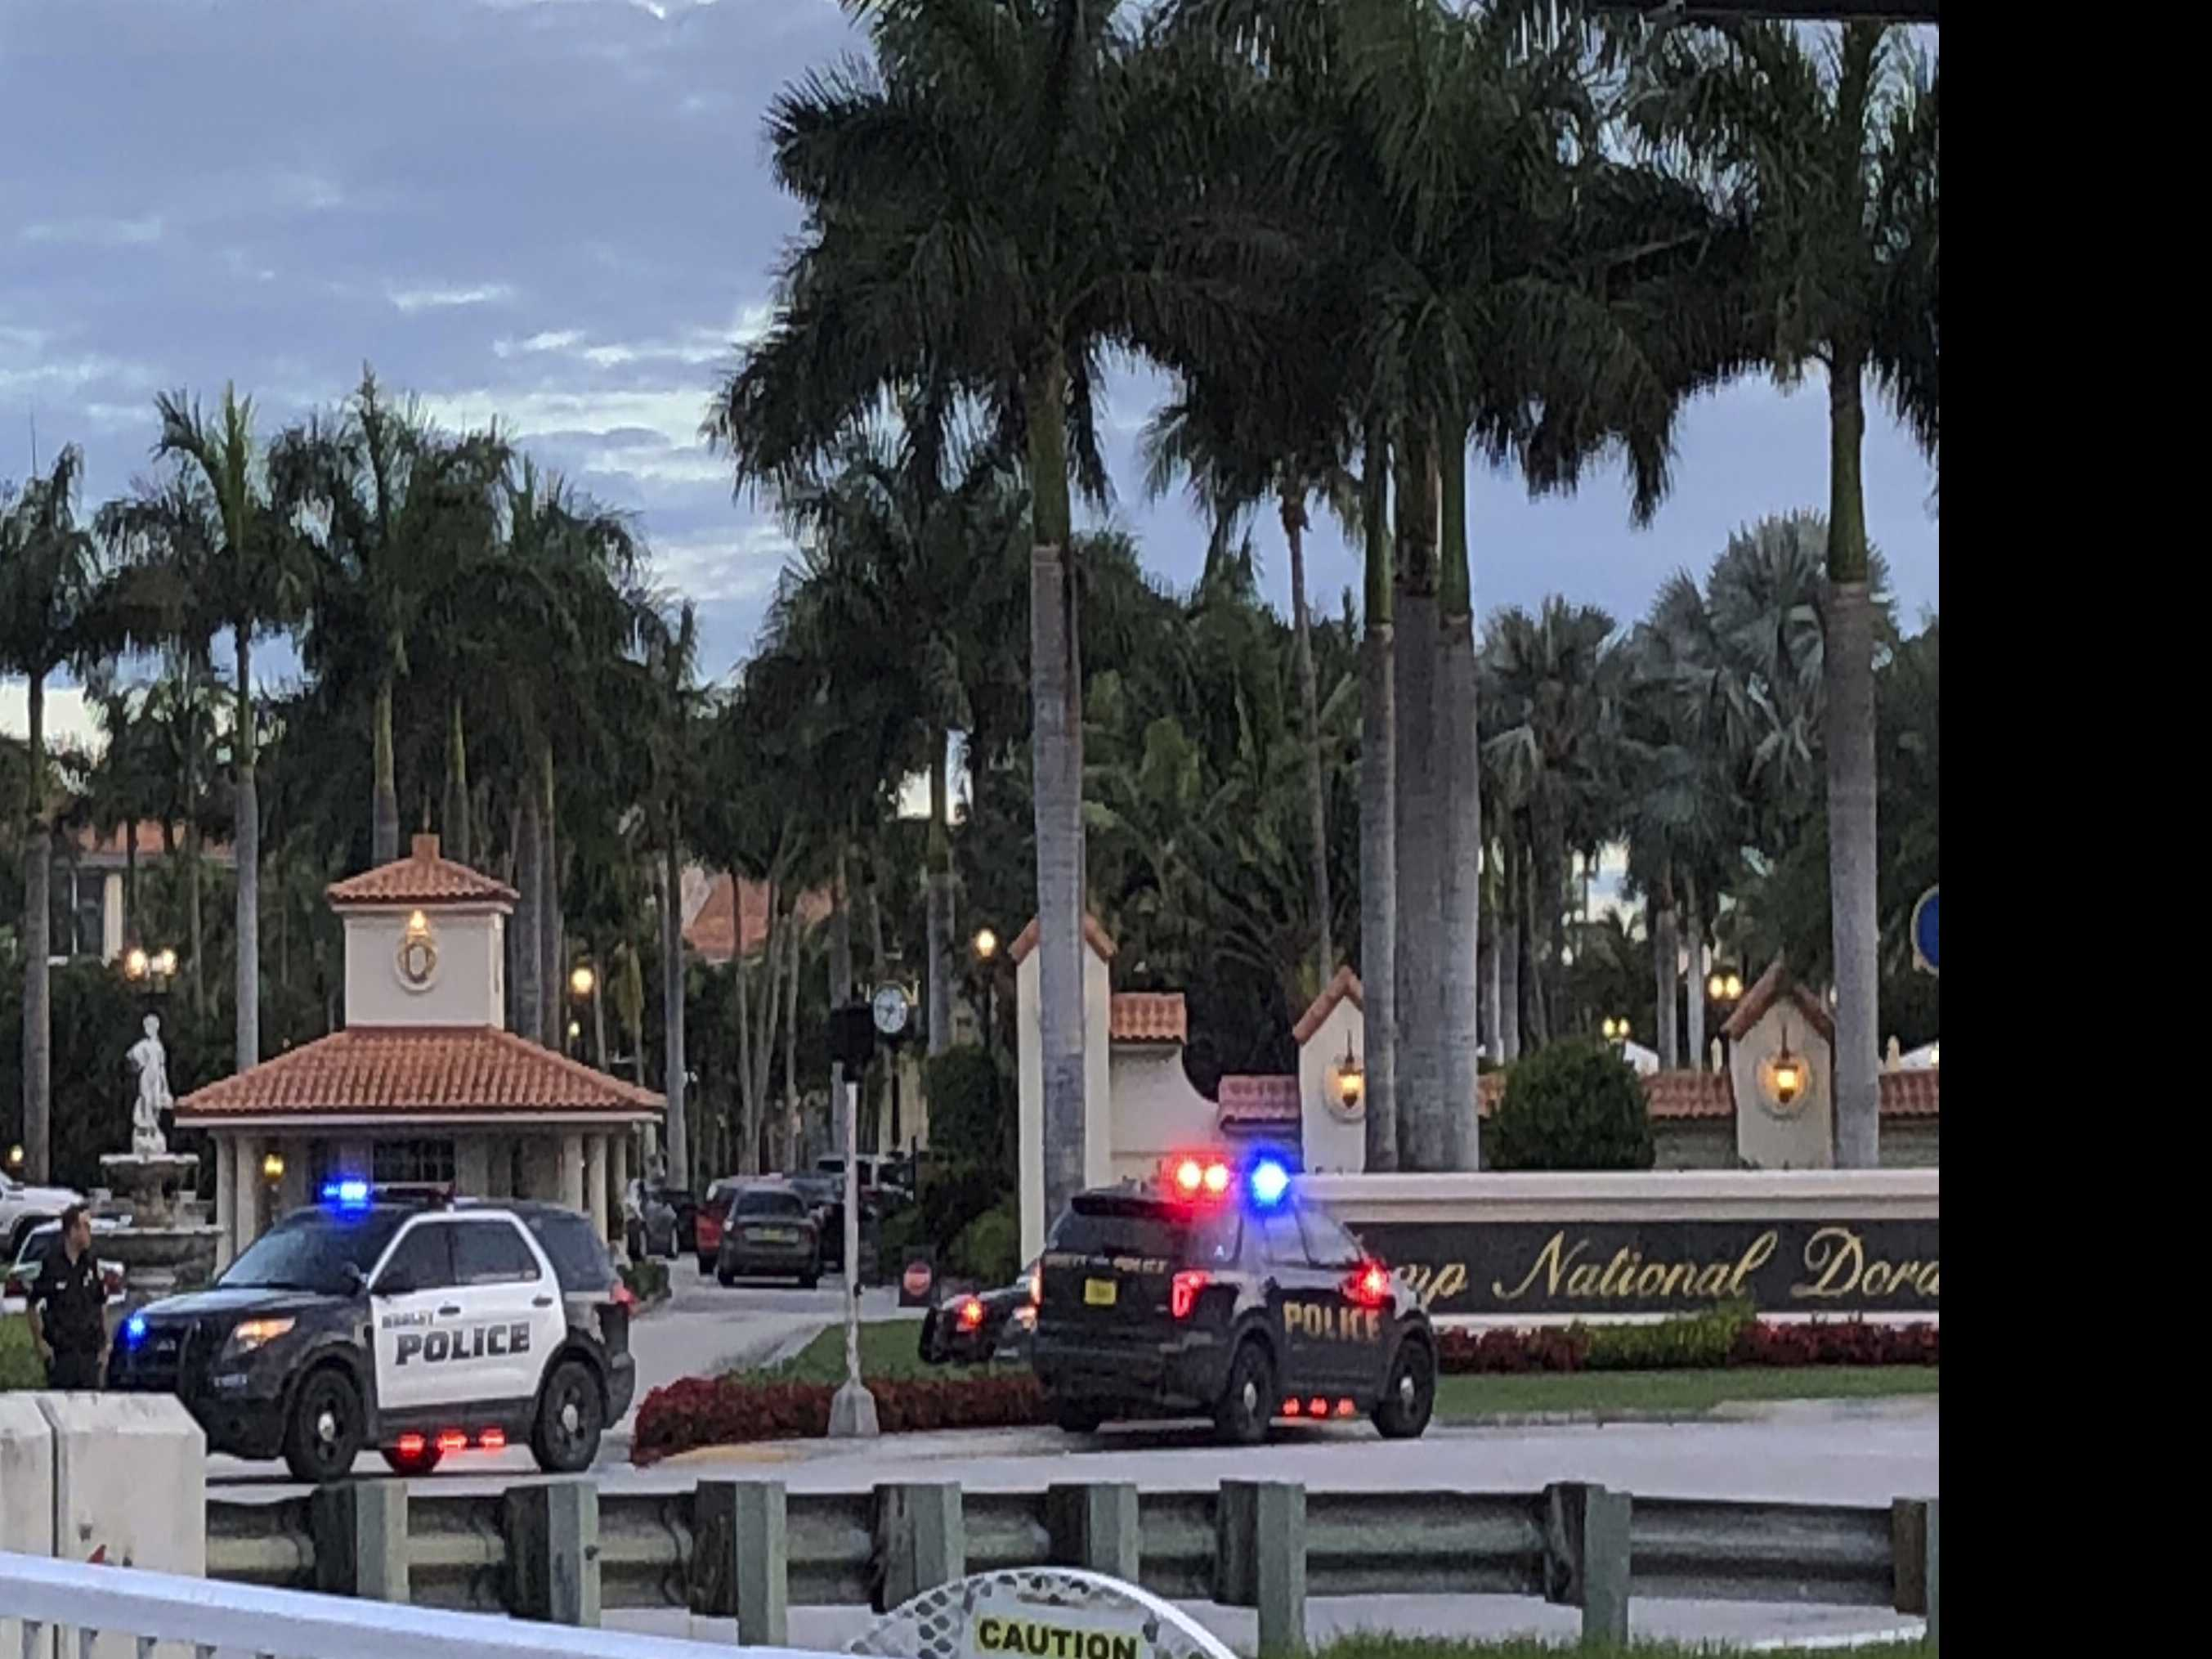 Police: Man Arrested After Firing Shots at Trump Golf Club